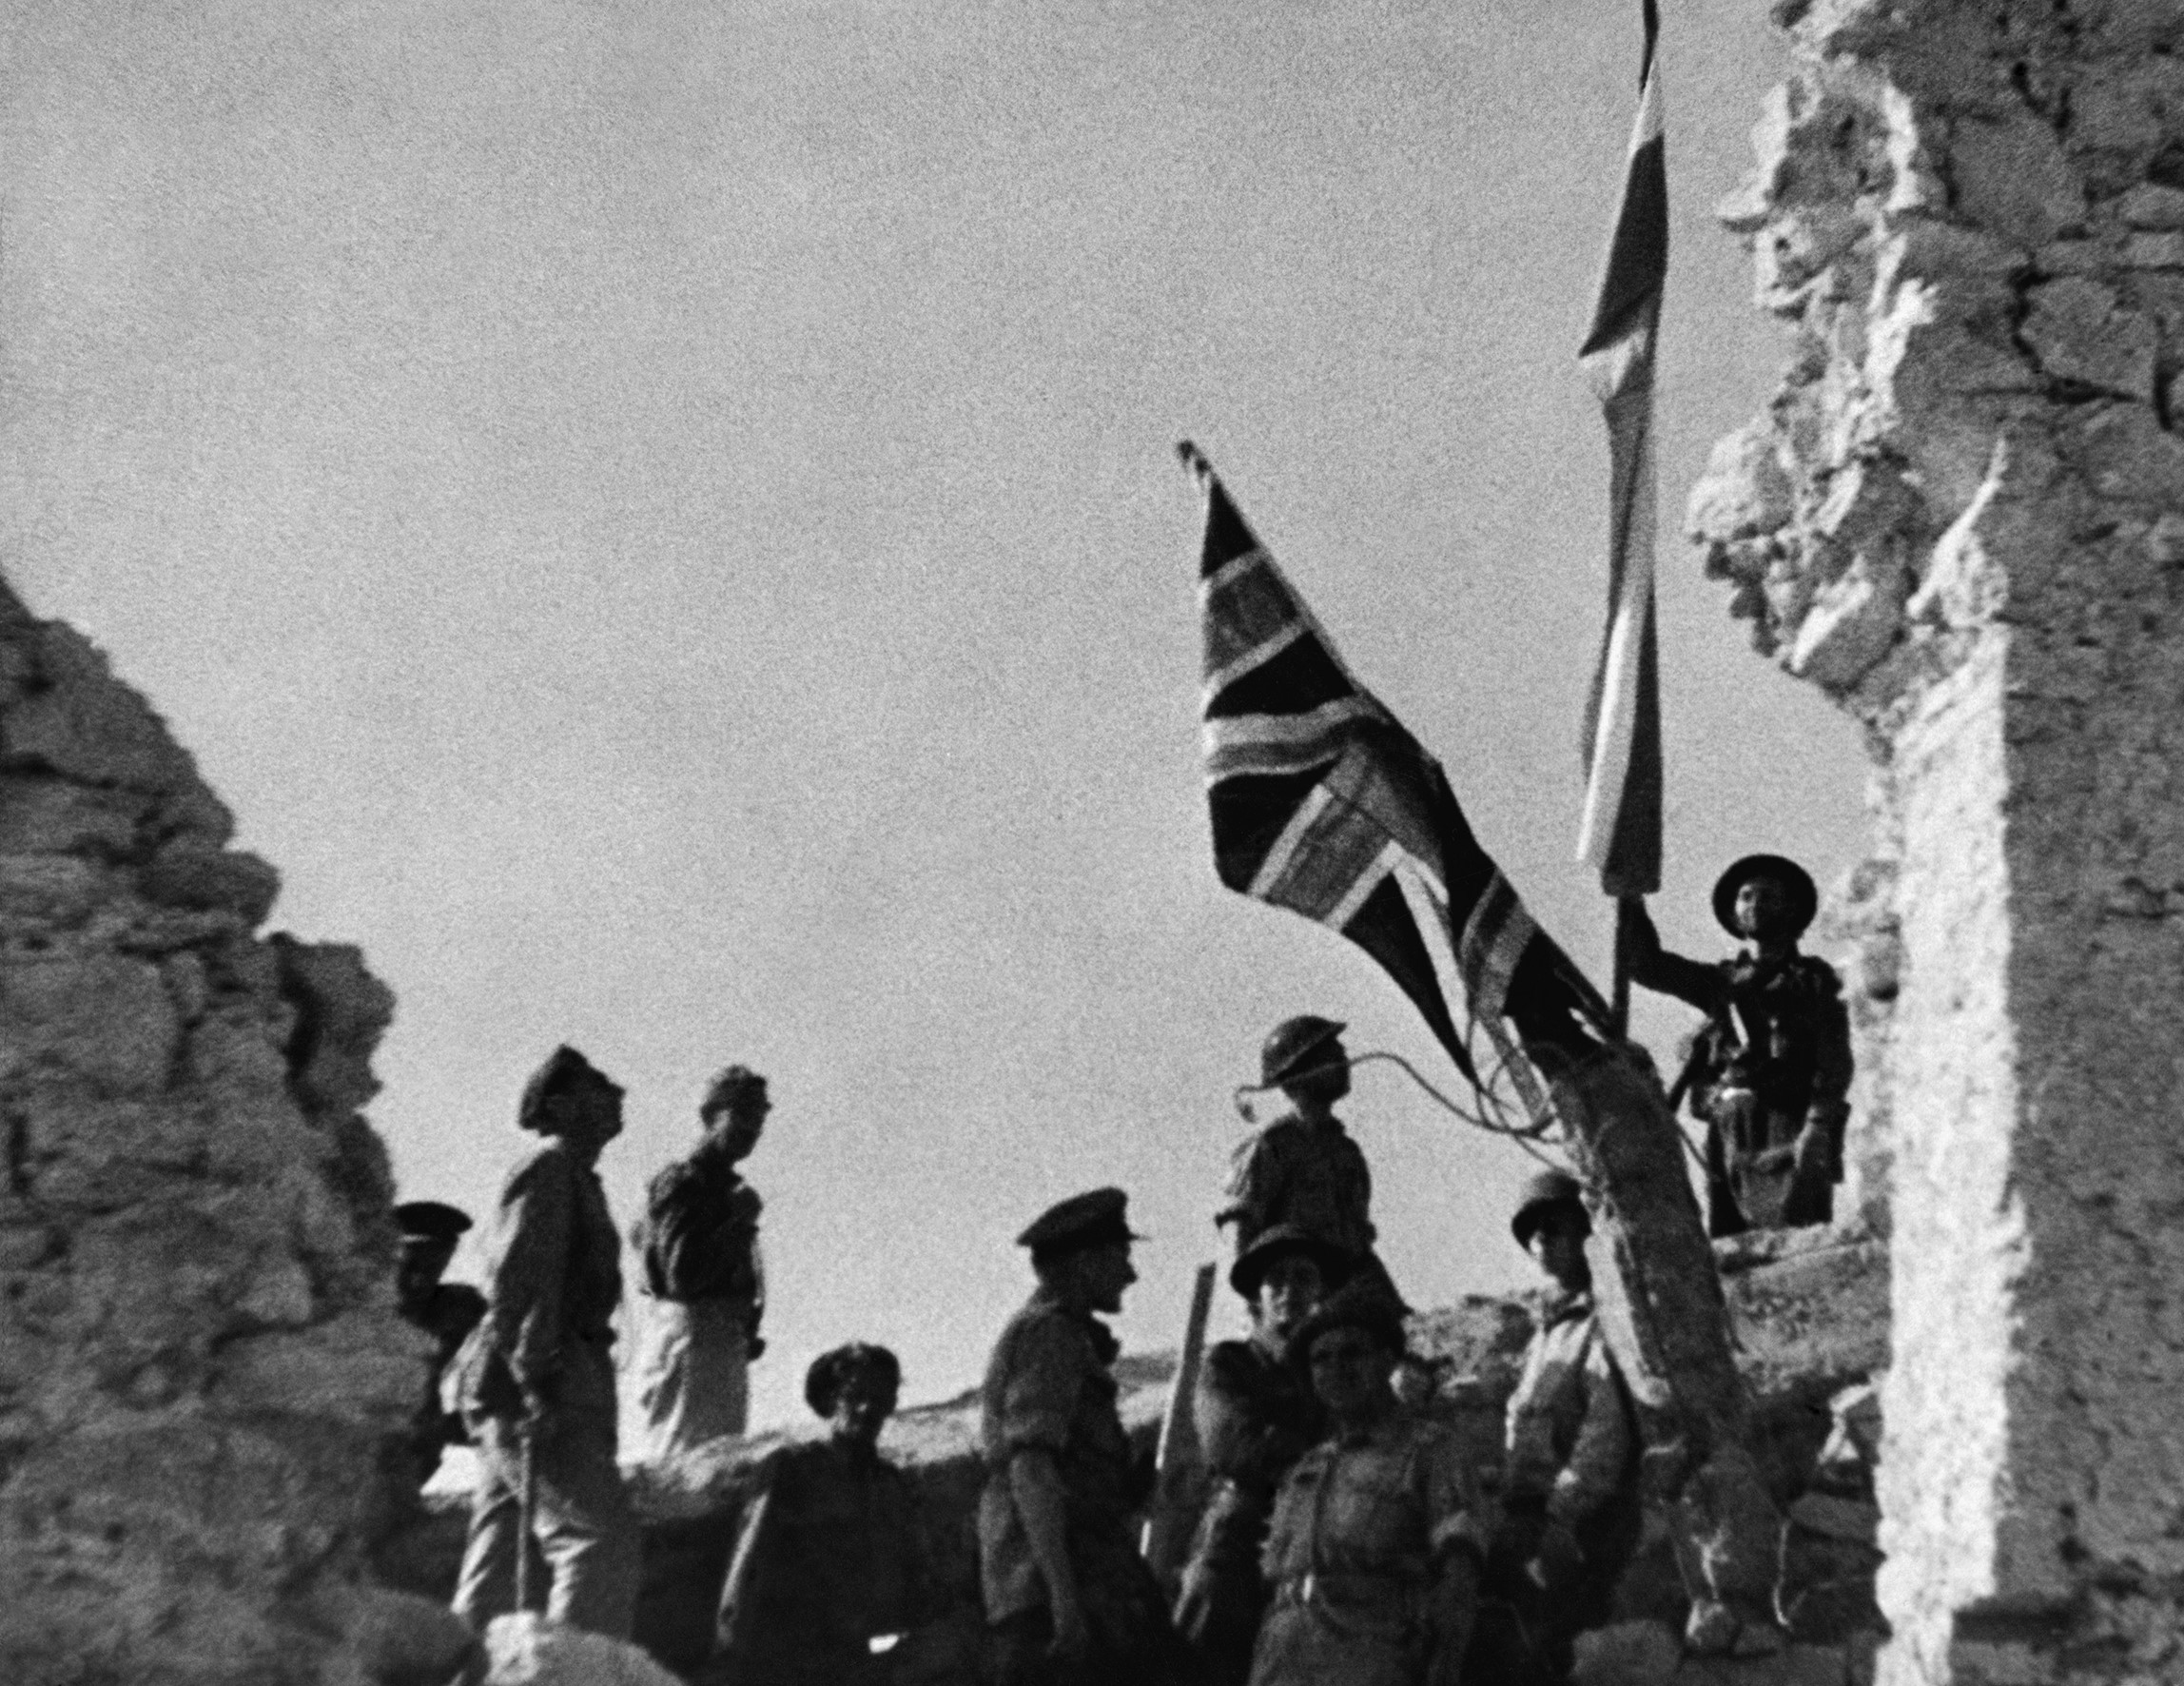 British and Polish troops (3rd Carpathian Rifles Division, 2nd Corps) raising the Union Jack alongside the Polish flag in the ruins of the Monte Cassino Monastery, 18 May 1944.